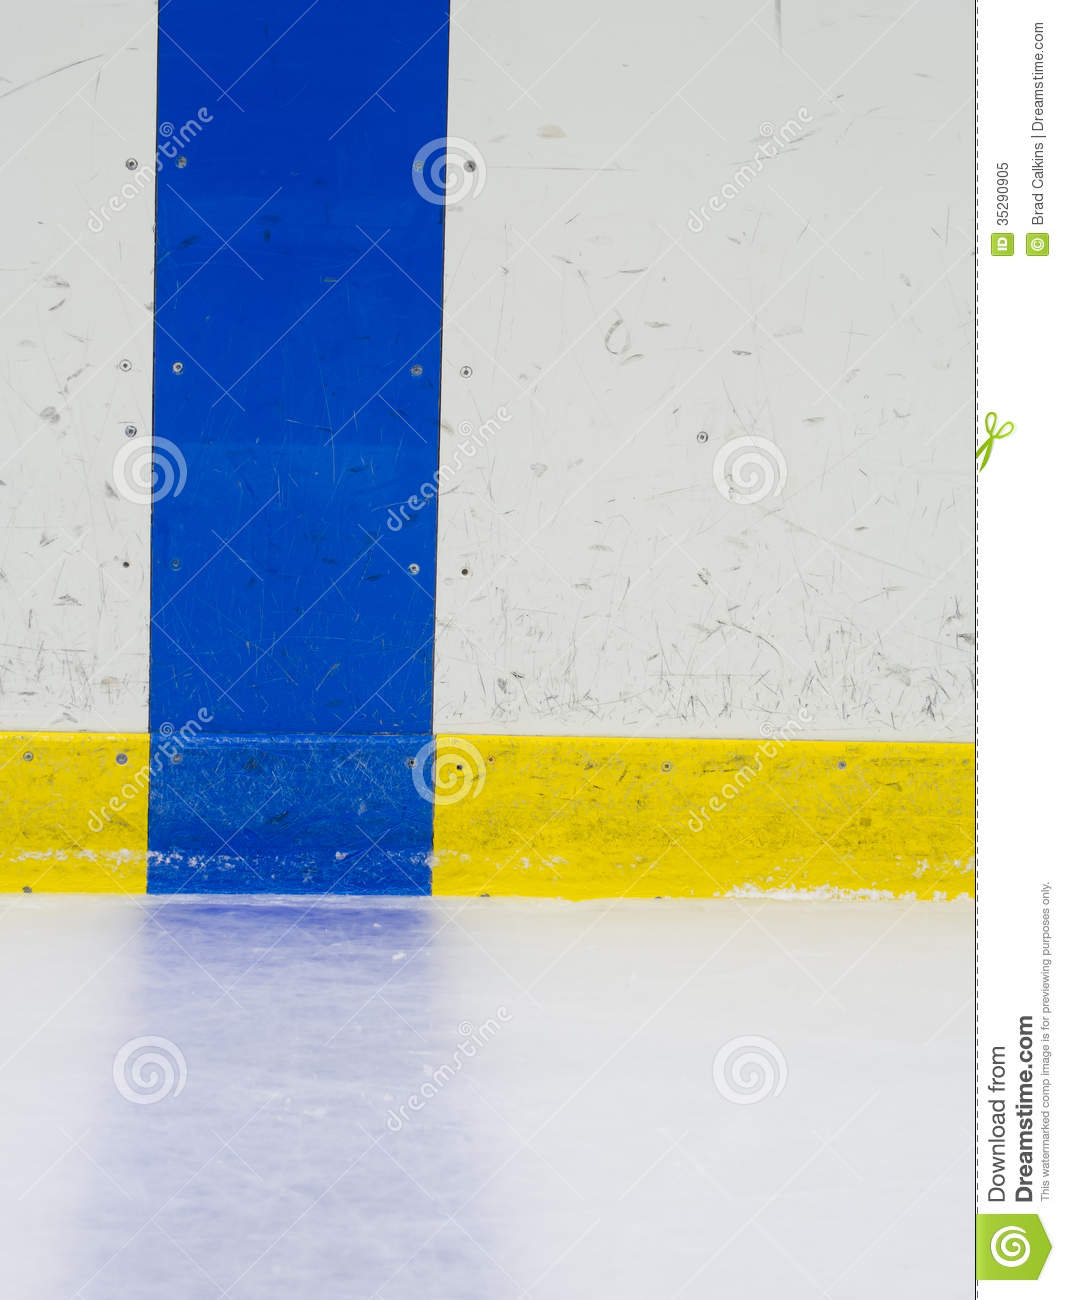 Hockey Blue Line Stock Image. Image Of Wall, Boards